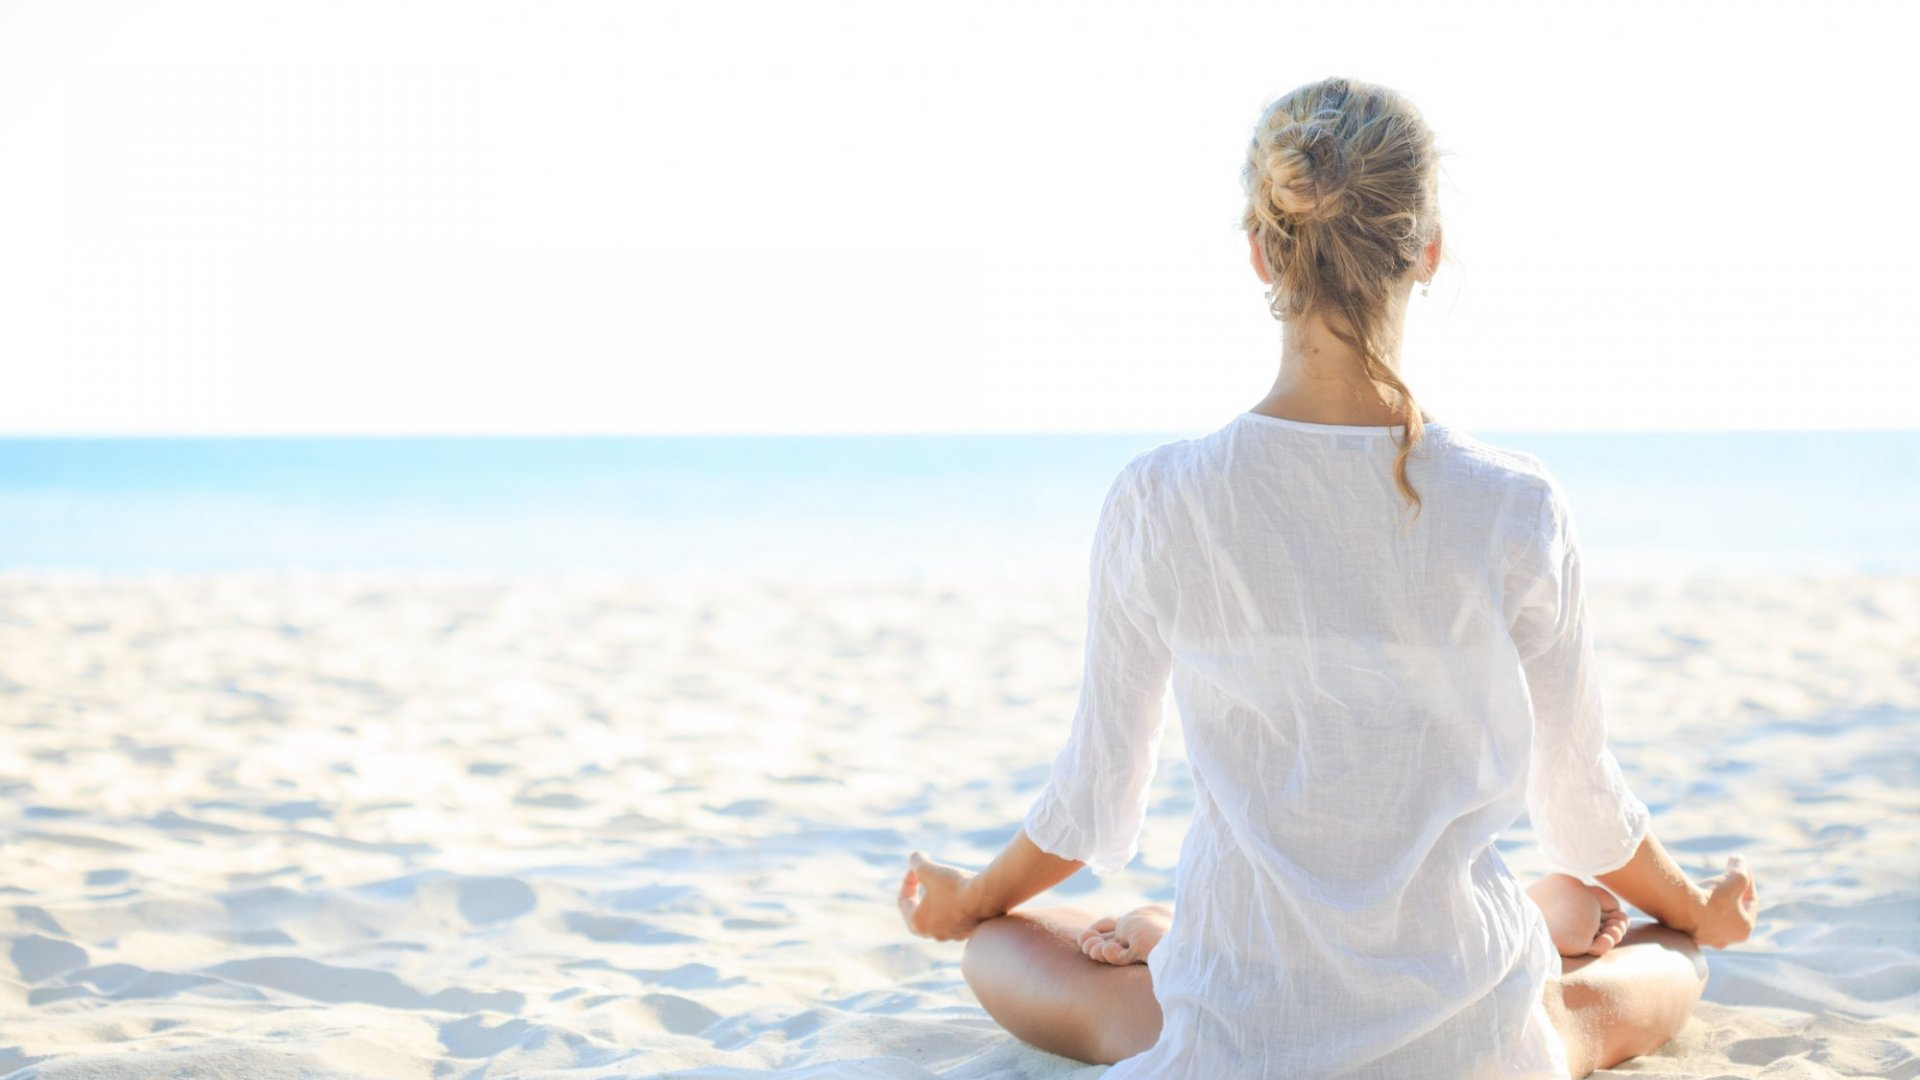 5 Mindfulness Habits of the Happiest People